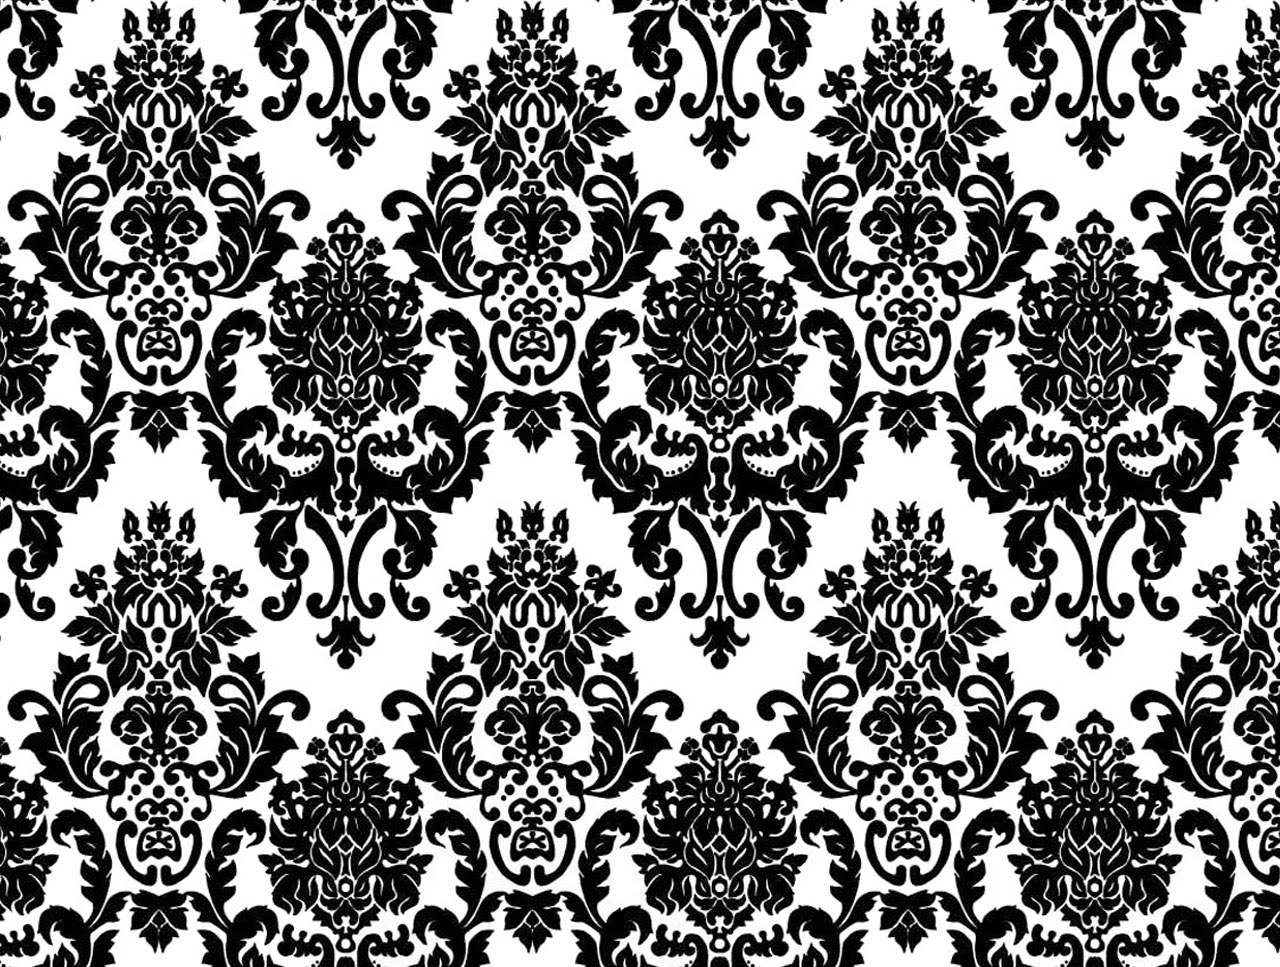 Mix damask wallpaper wallpaperyork brows your for Black white damask wallpaper mural